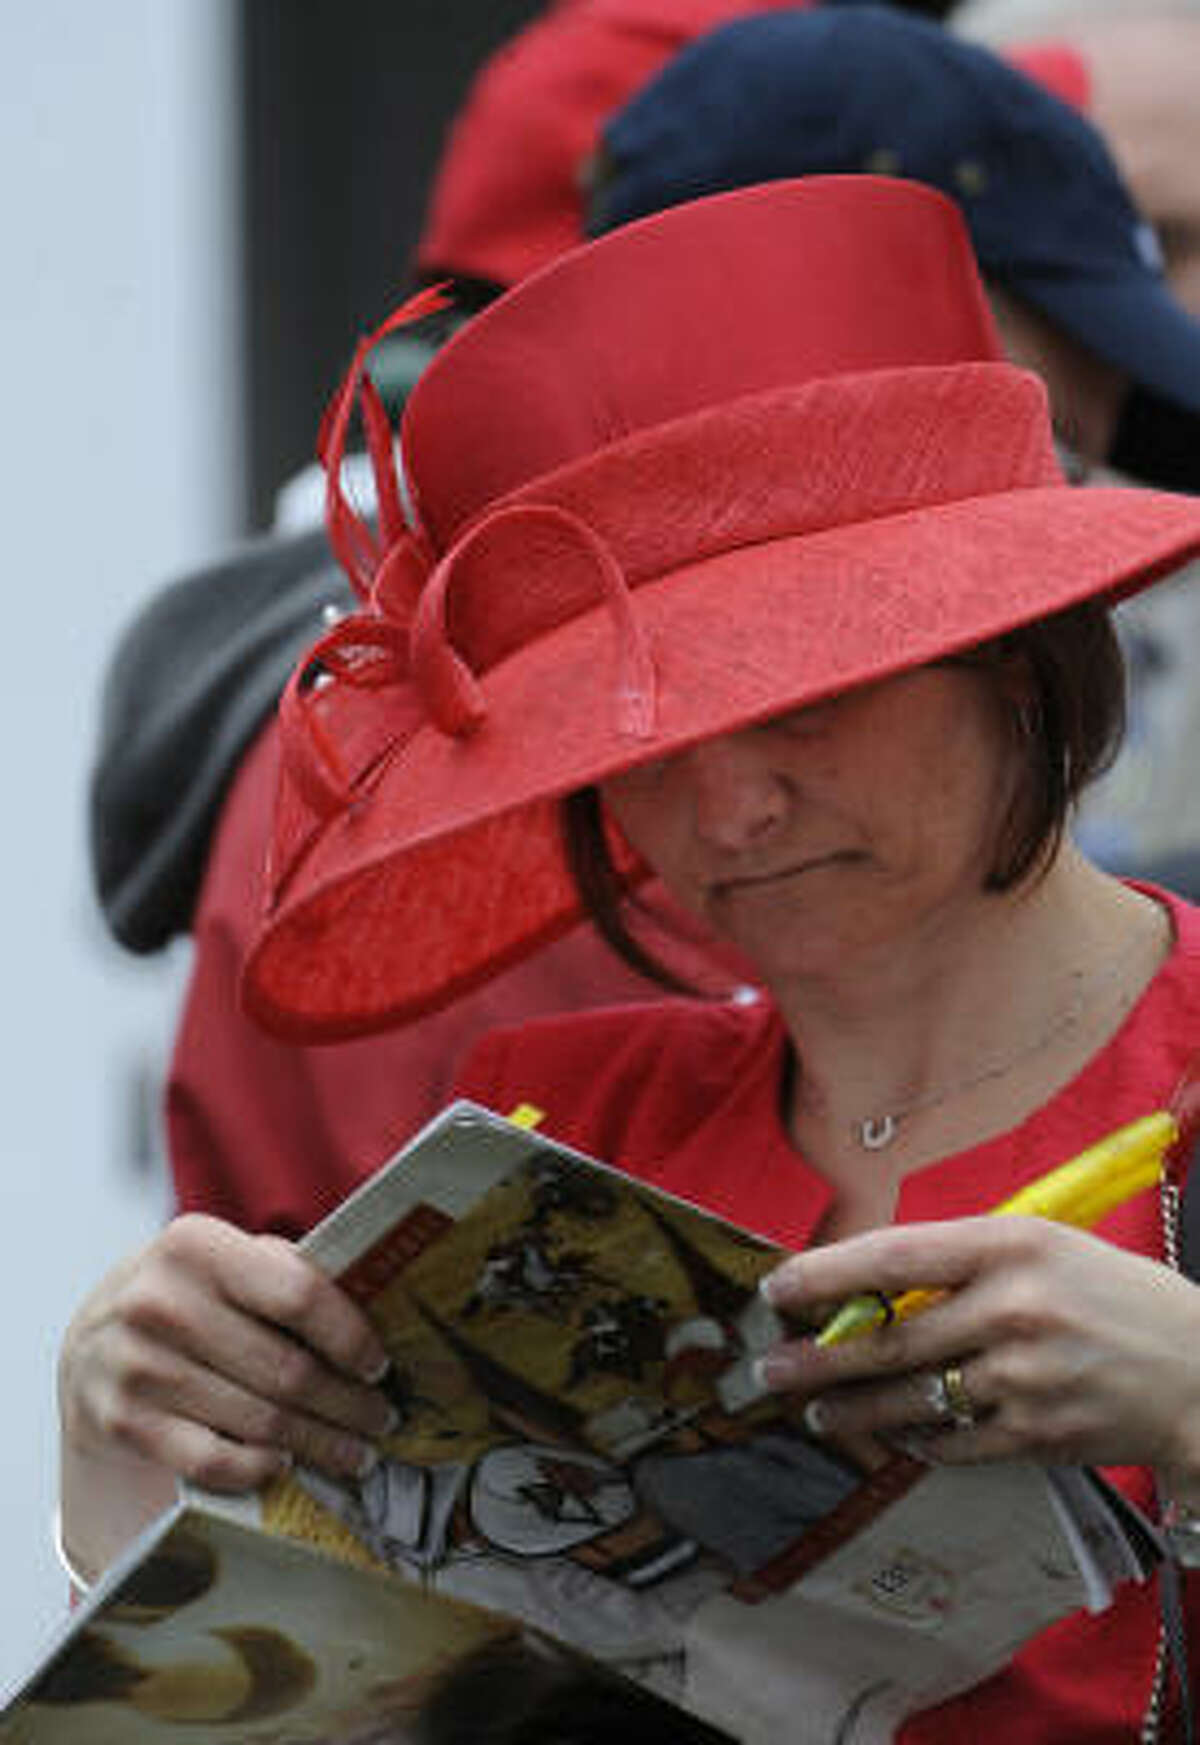 A derby patron flips through a race program, sporting one of the unique hats for which the Run for the Roses is famous.